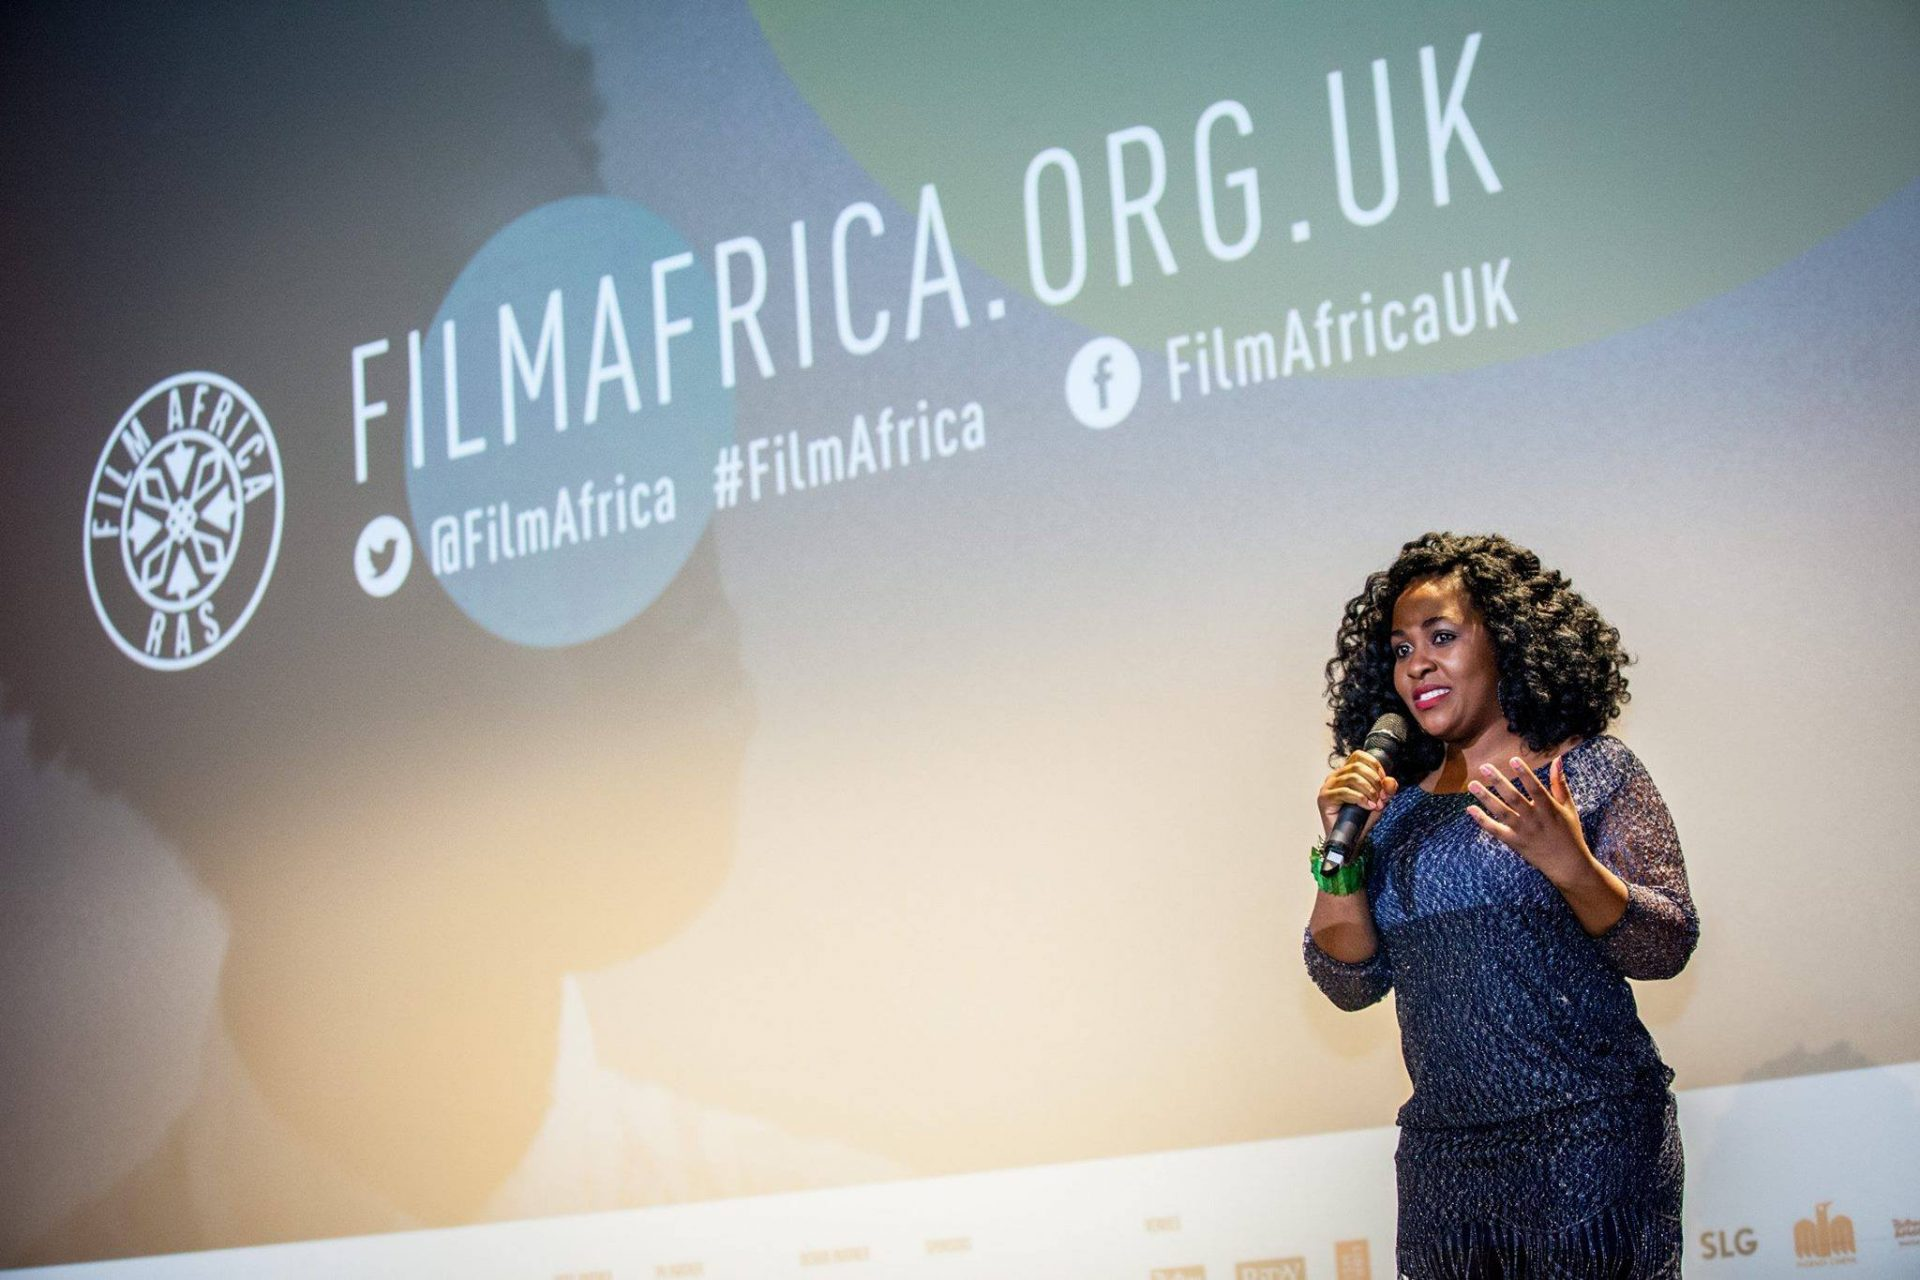 Royal Africa Film Festival